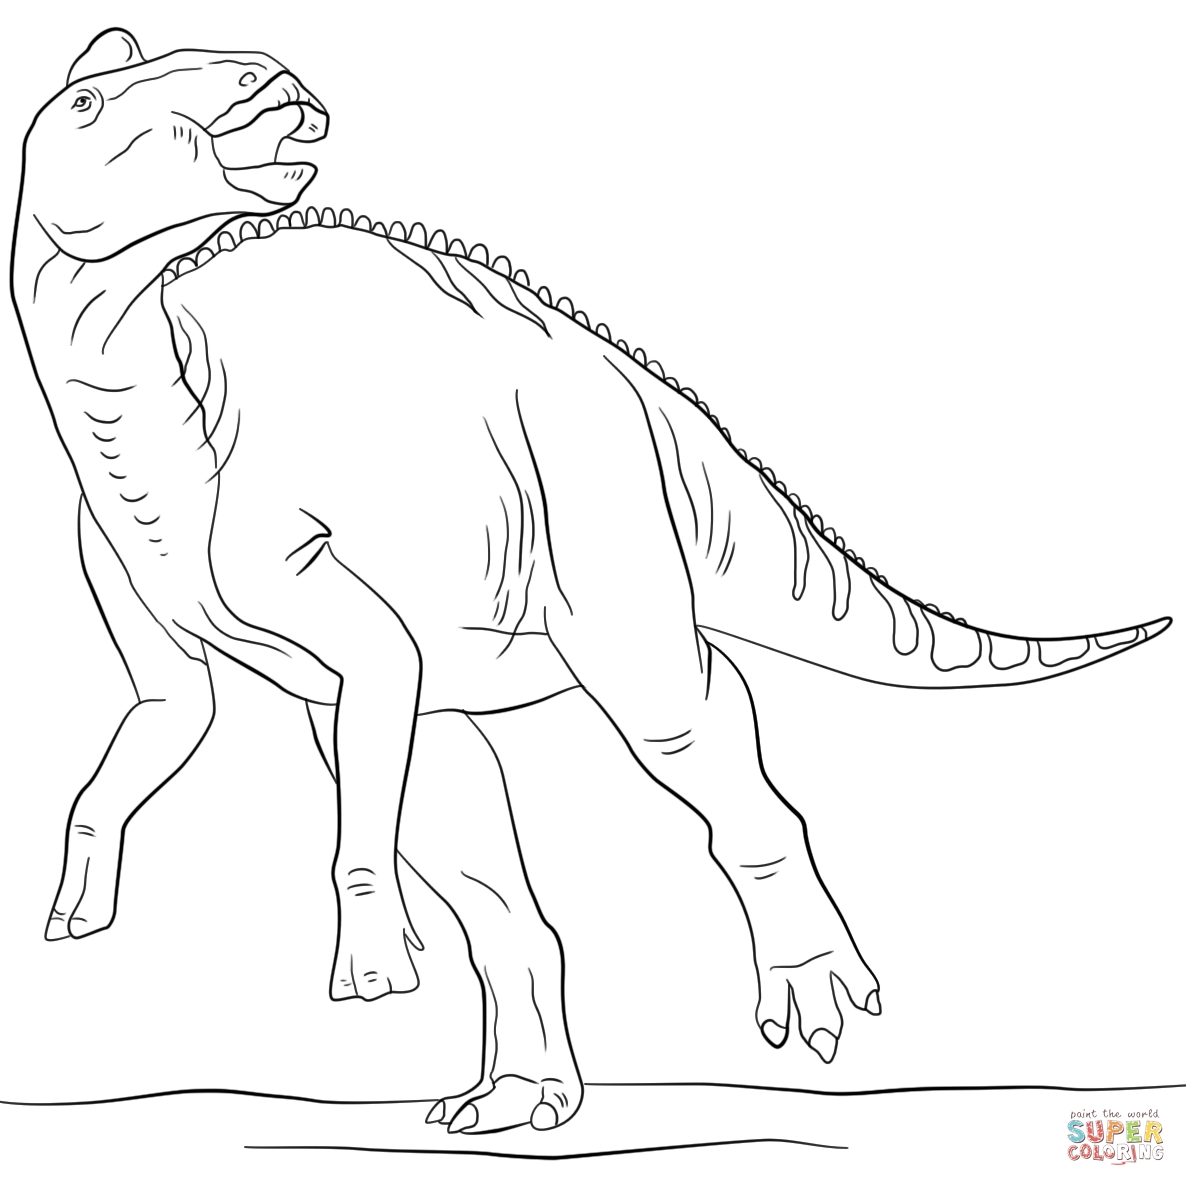 1186x1186 Beautiful Jurassic Park Coloring Pages Printable Inspiration